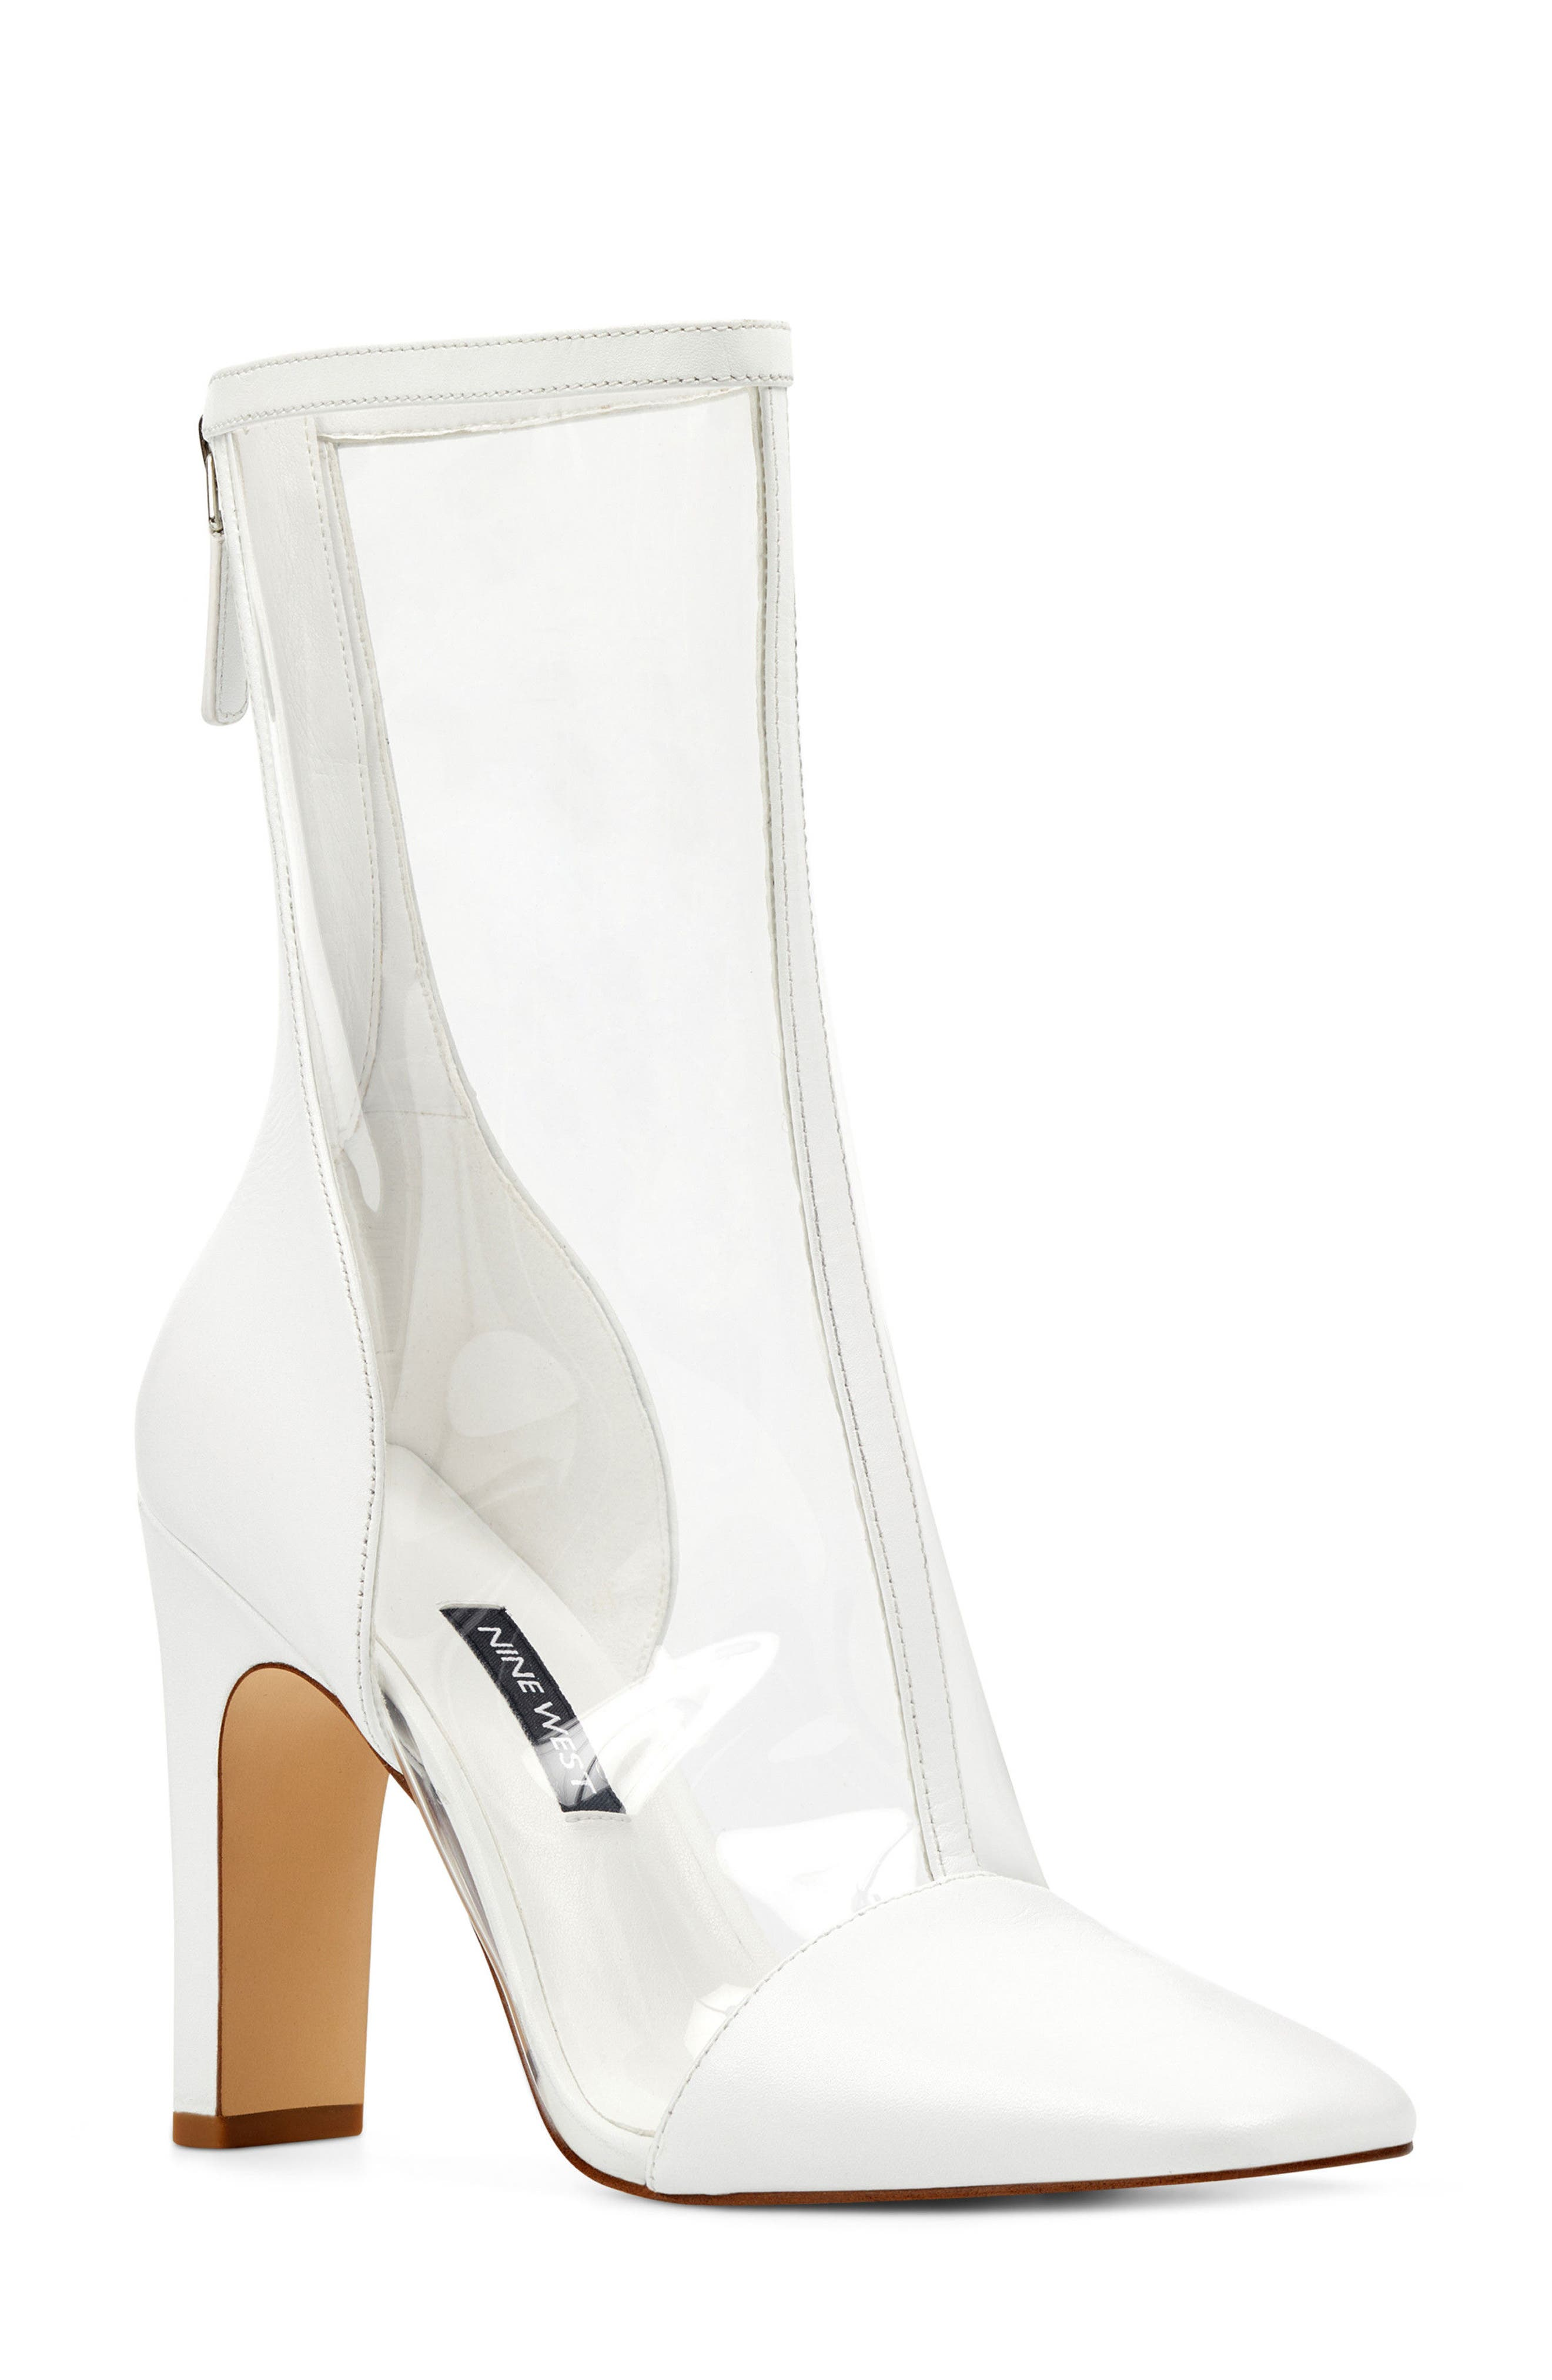 Quitend Boot,                         Main,                         color, Clear/ White